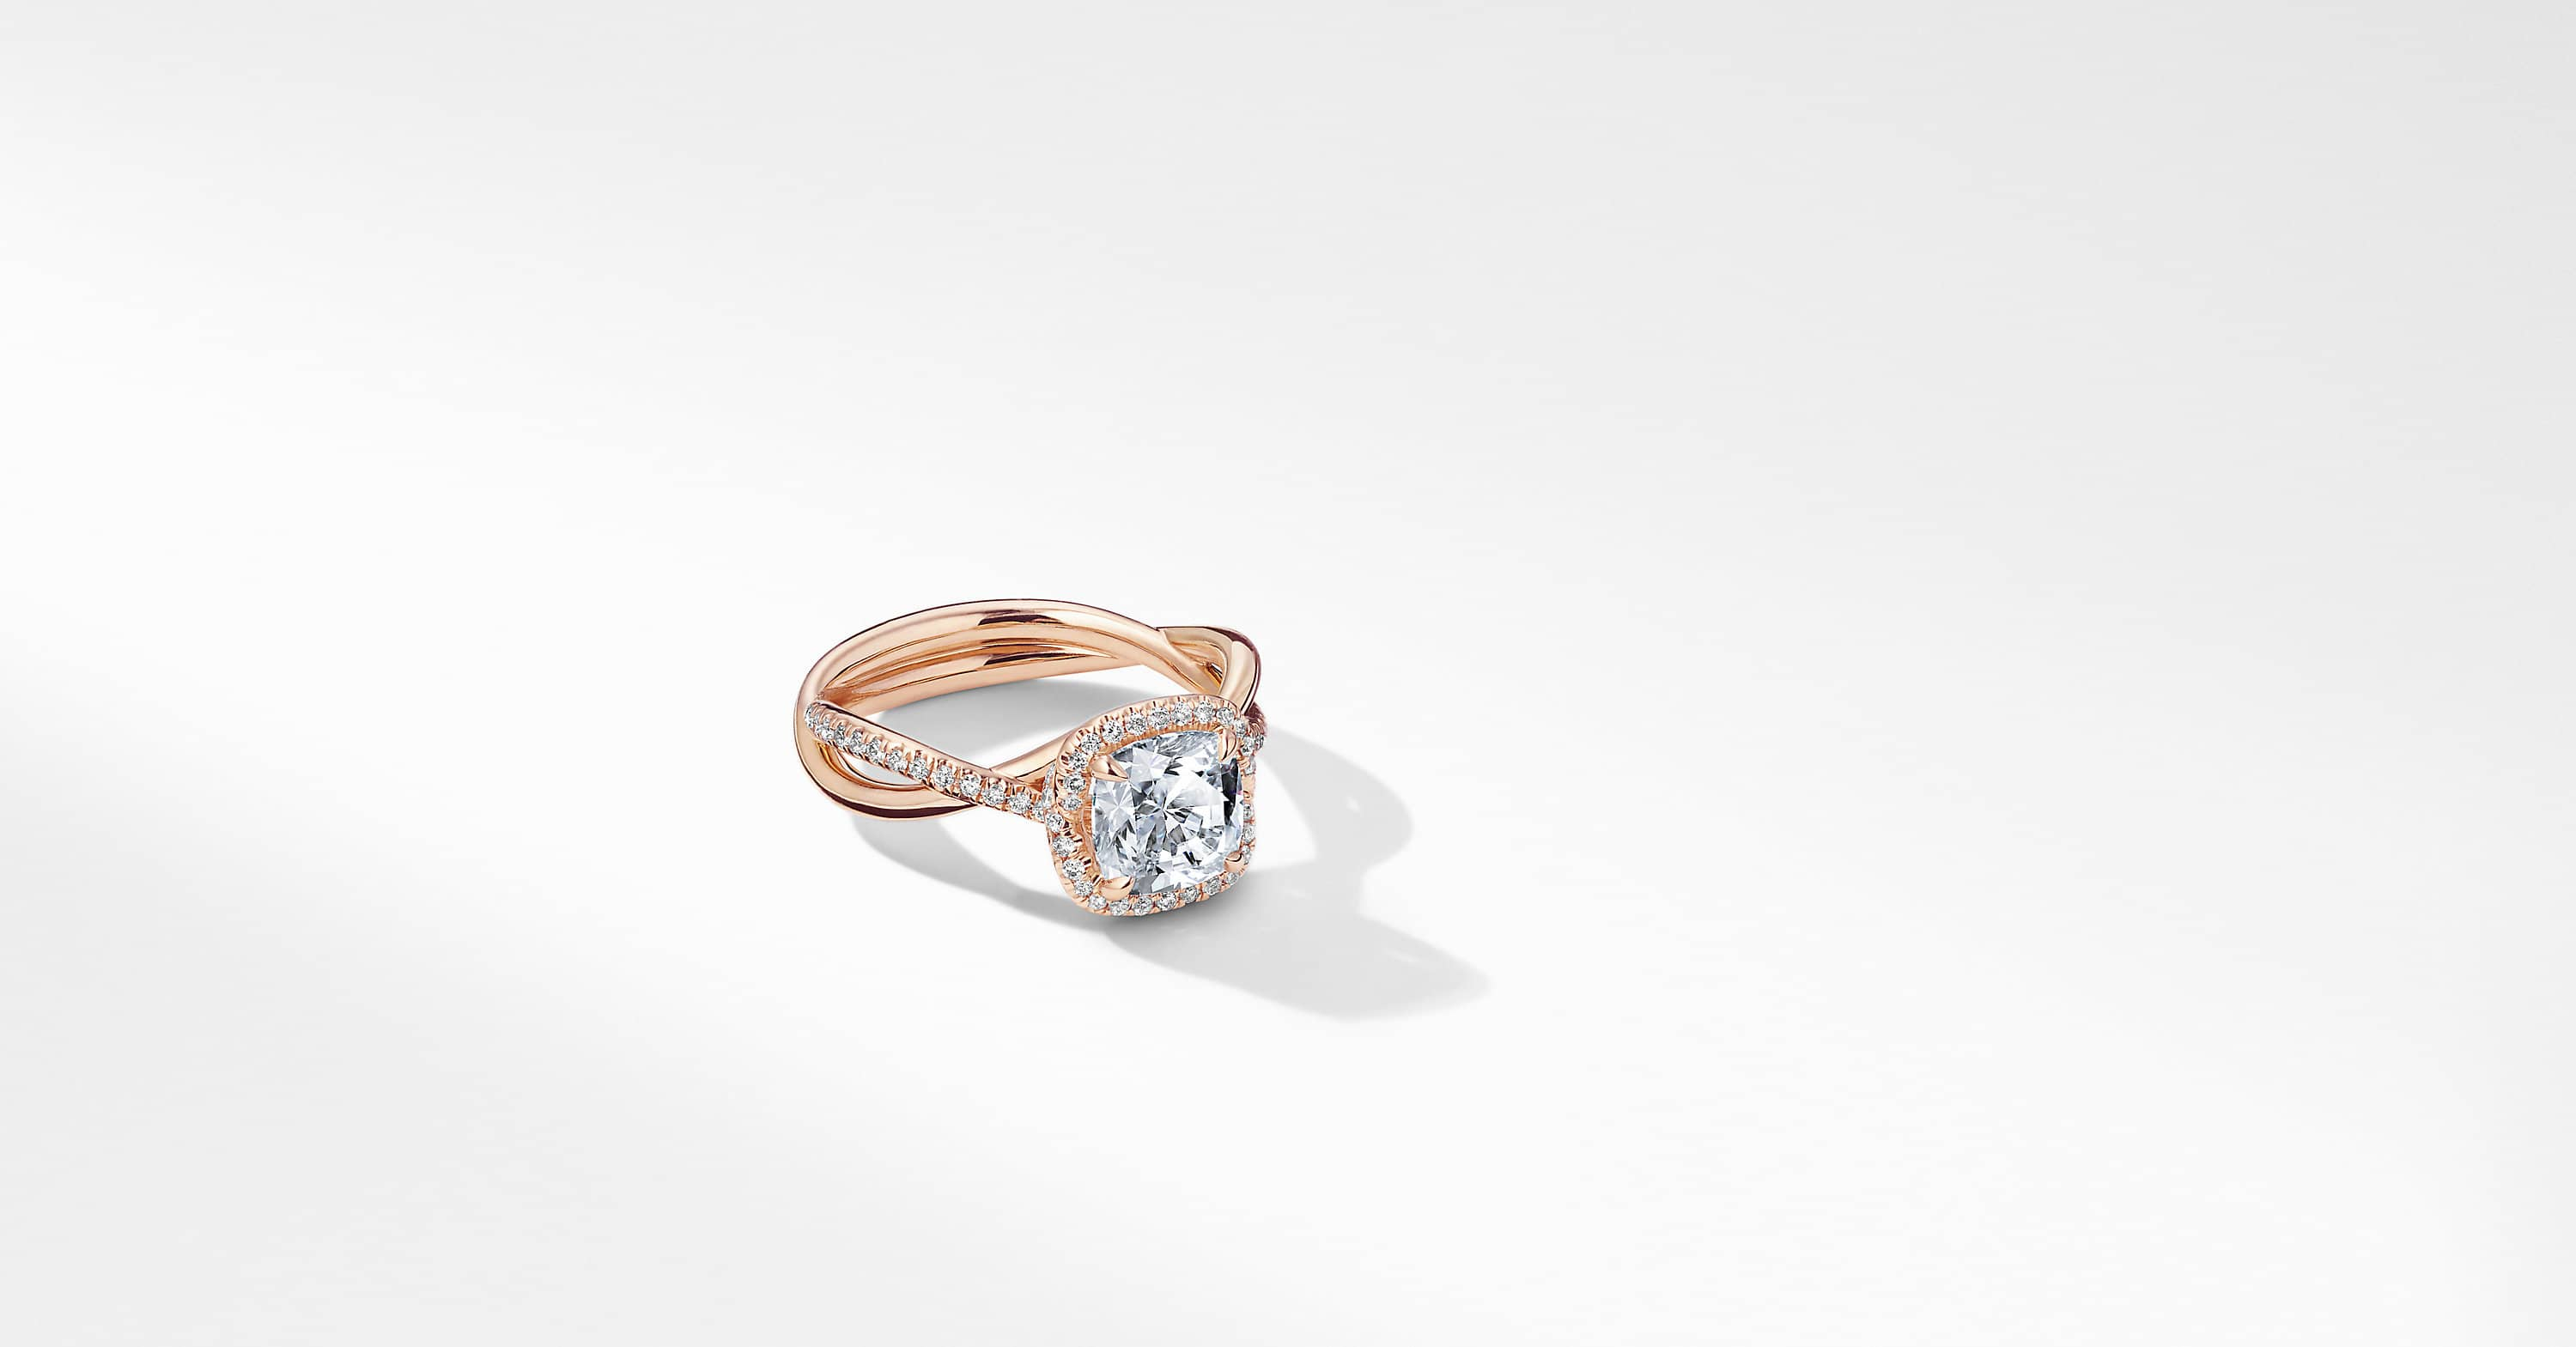 DY Lanai Part Pavé Engagement Ring in 18K Rose Gold, Cushion